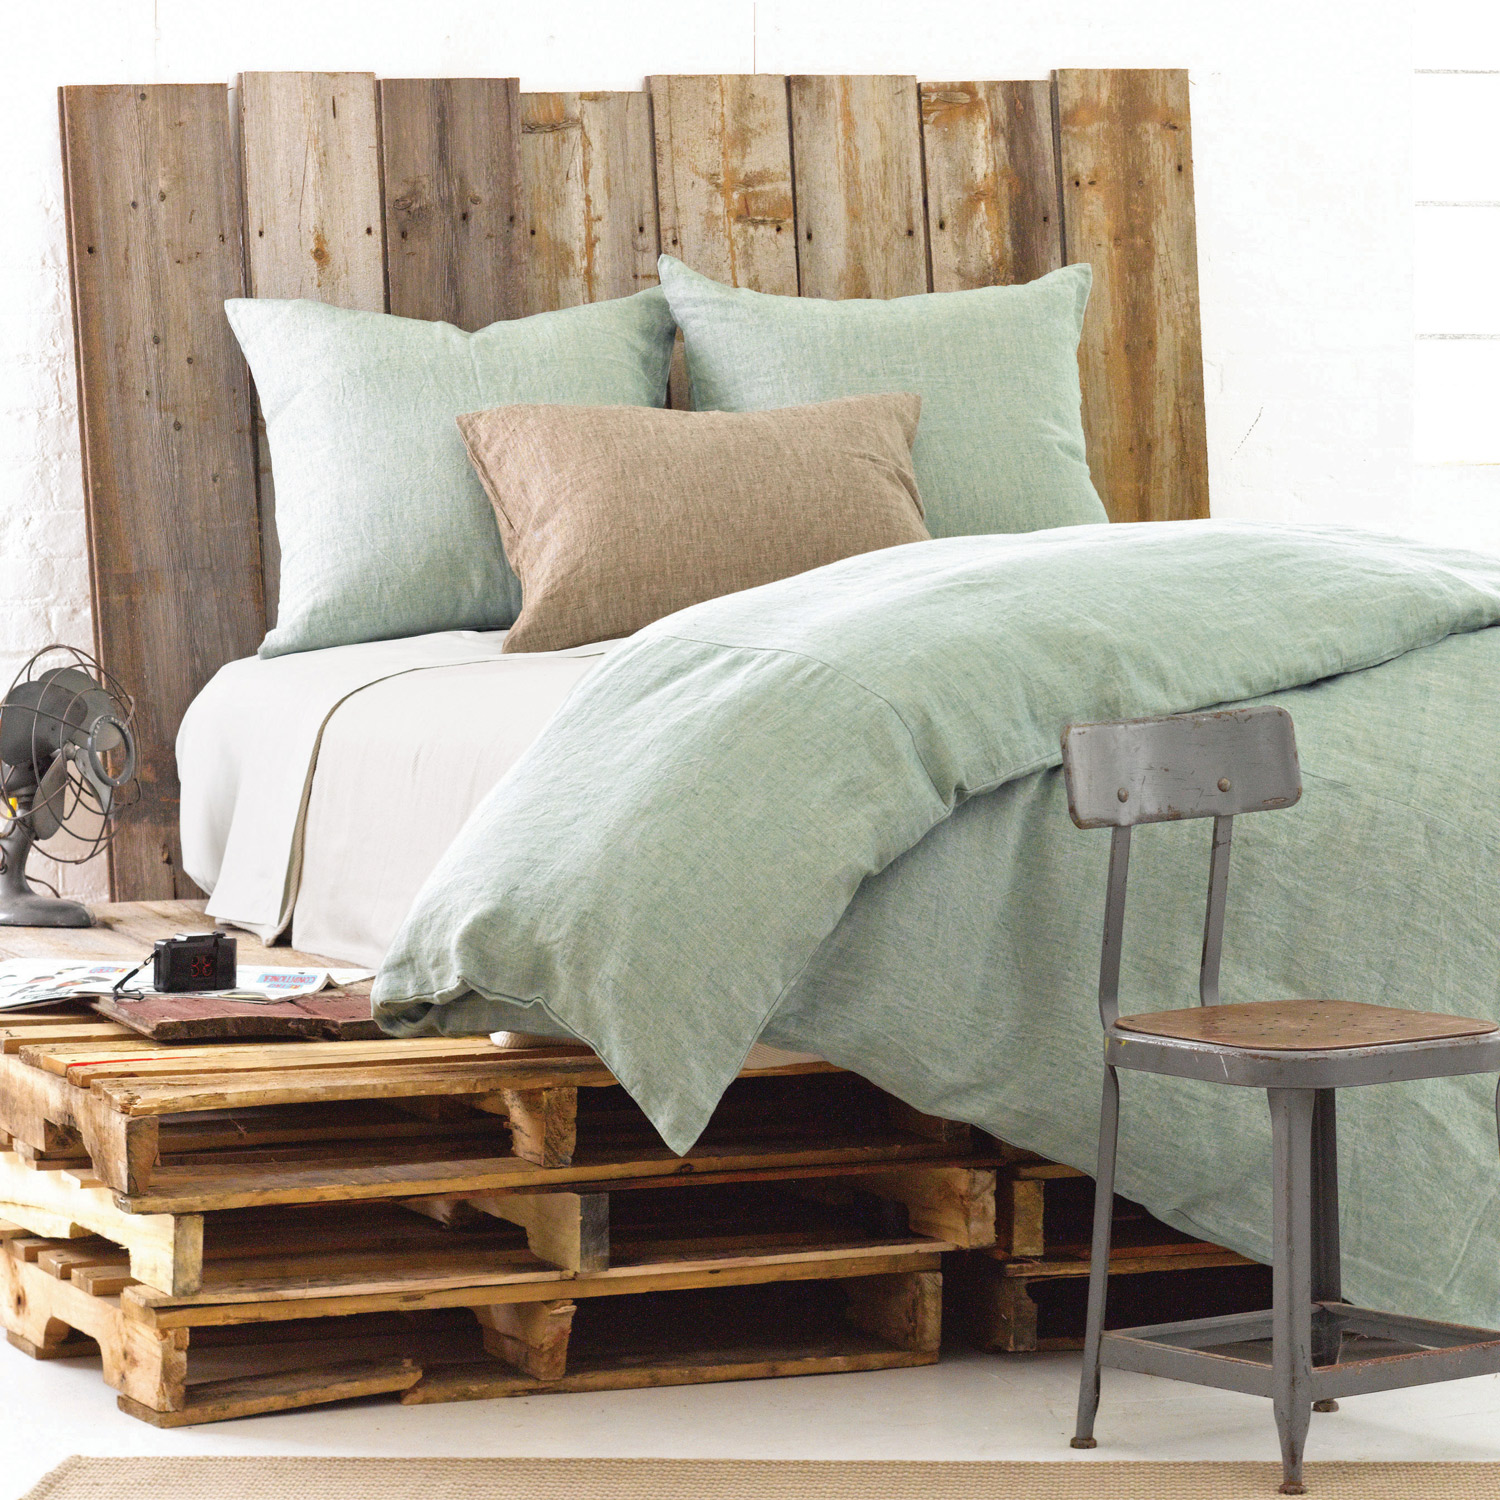 chic pine cone hill Chambray Linen Ocean Duvet Cover in green for bed ideas